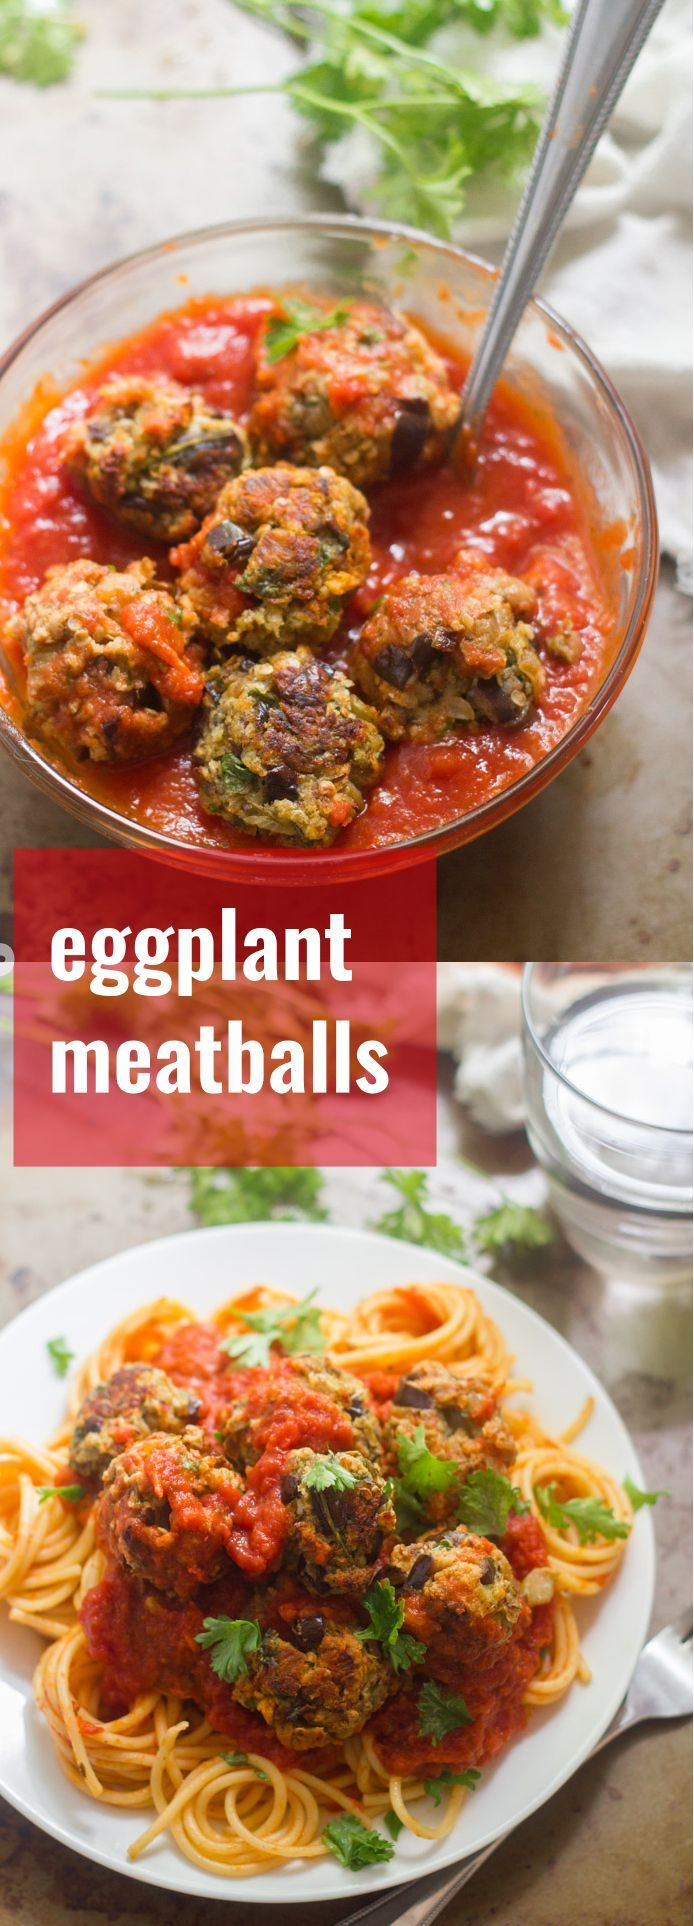 These vegan eggplant meatballs made with tender sautéed eggplant, crispy panko breadcrumbs and Italian seasonings, smothered in rich tomato sauce.